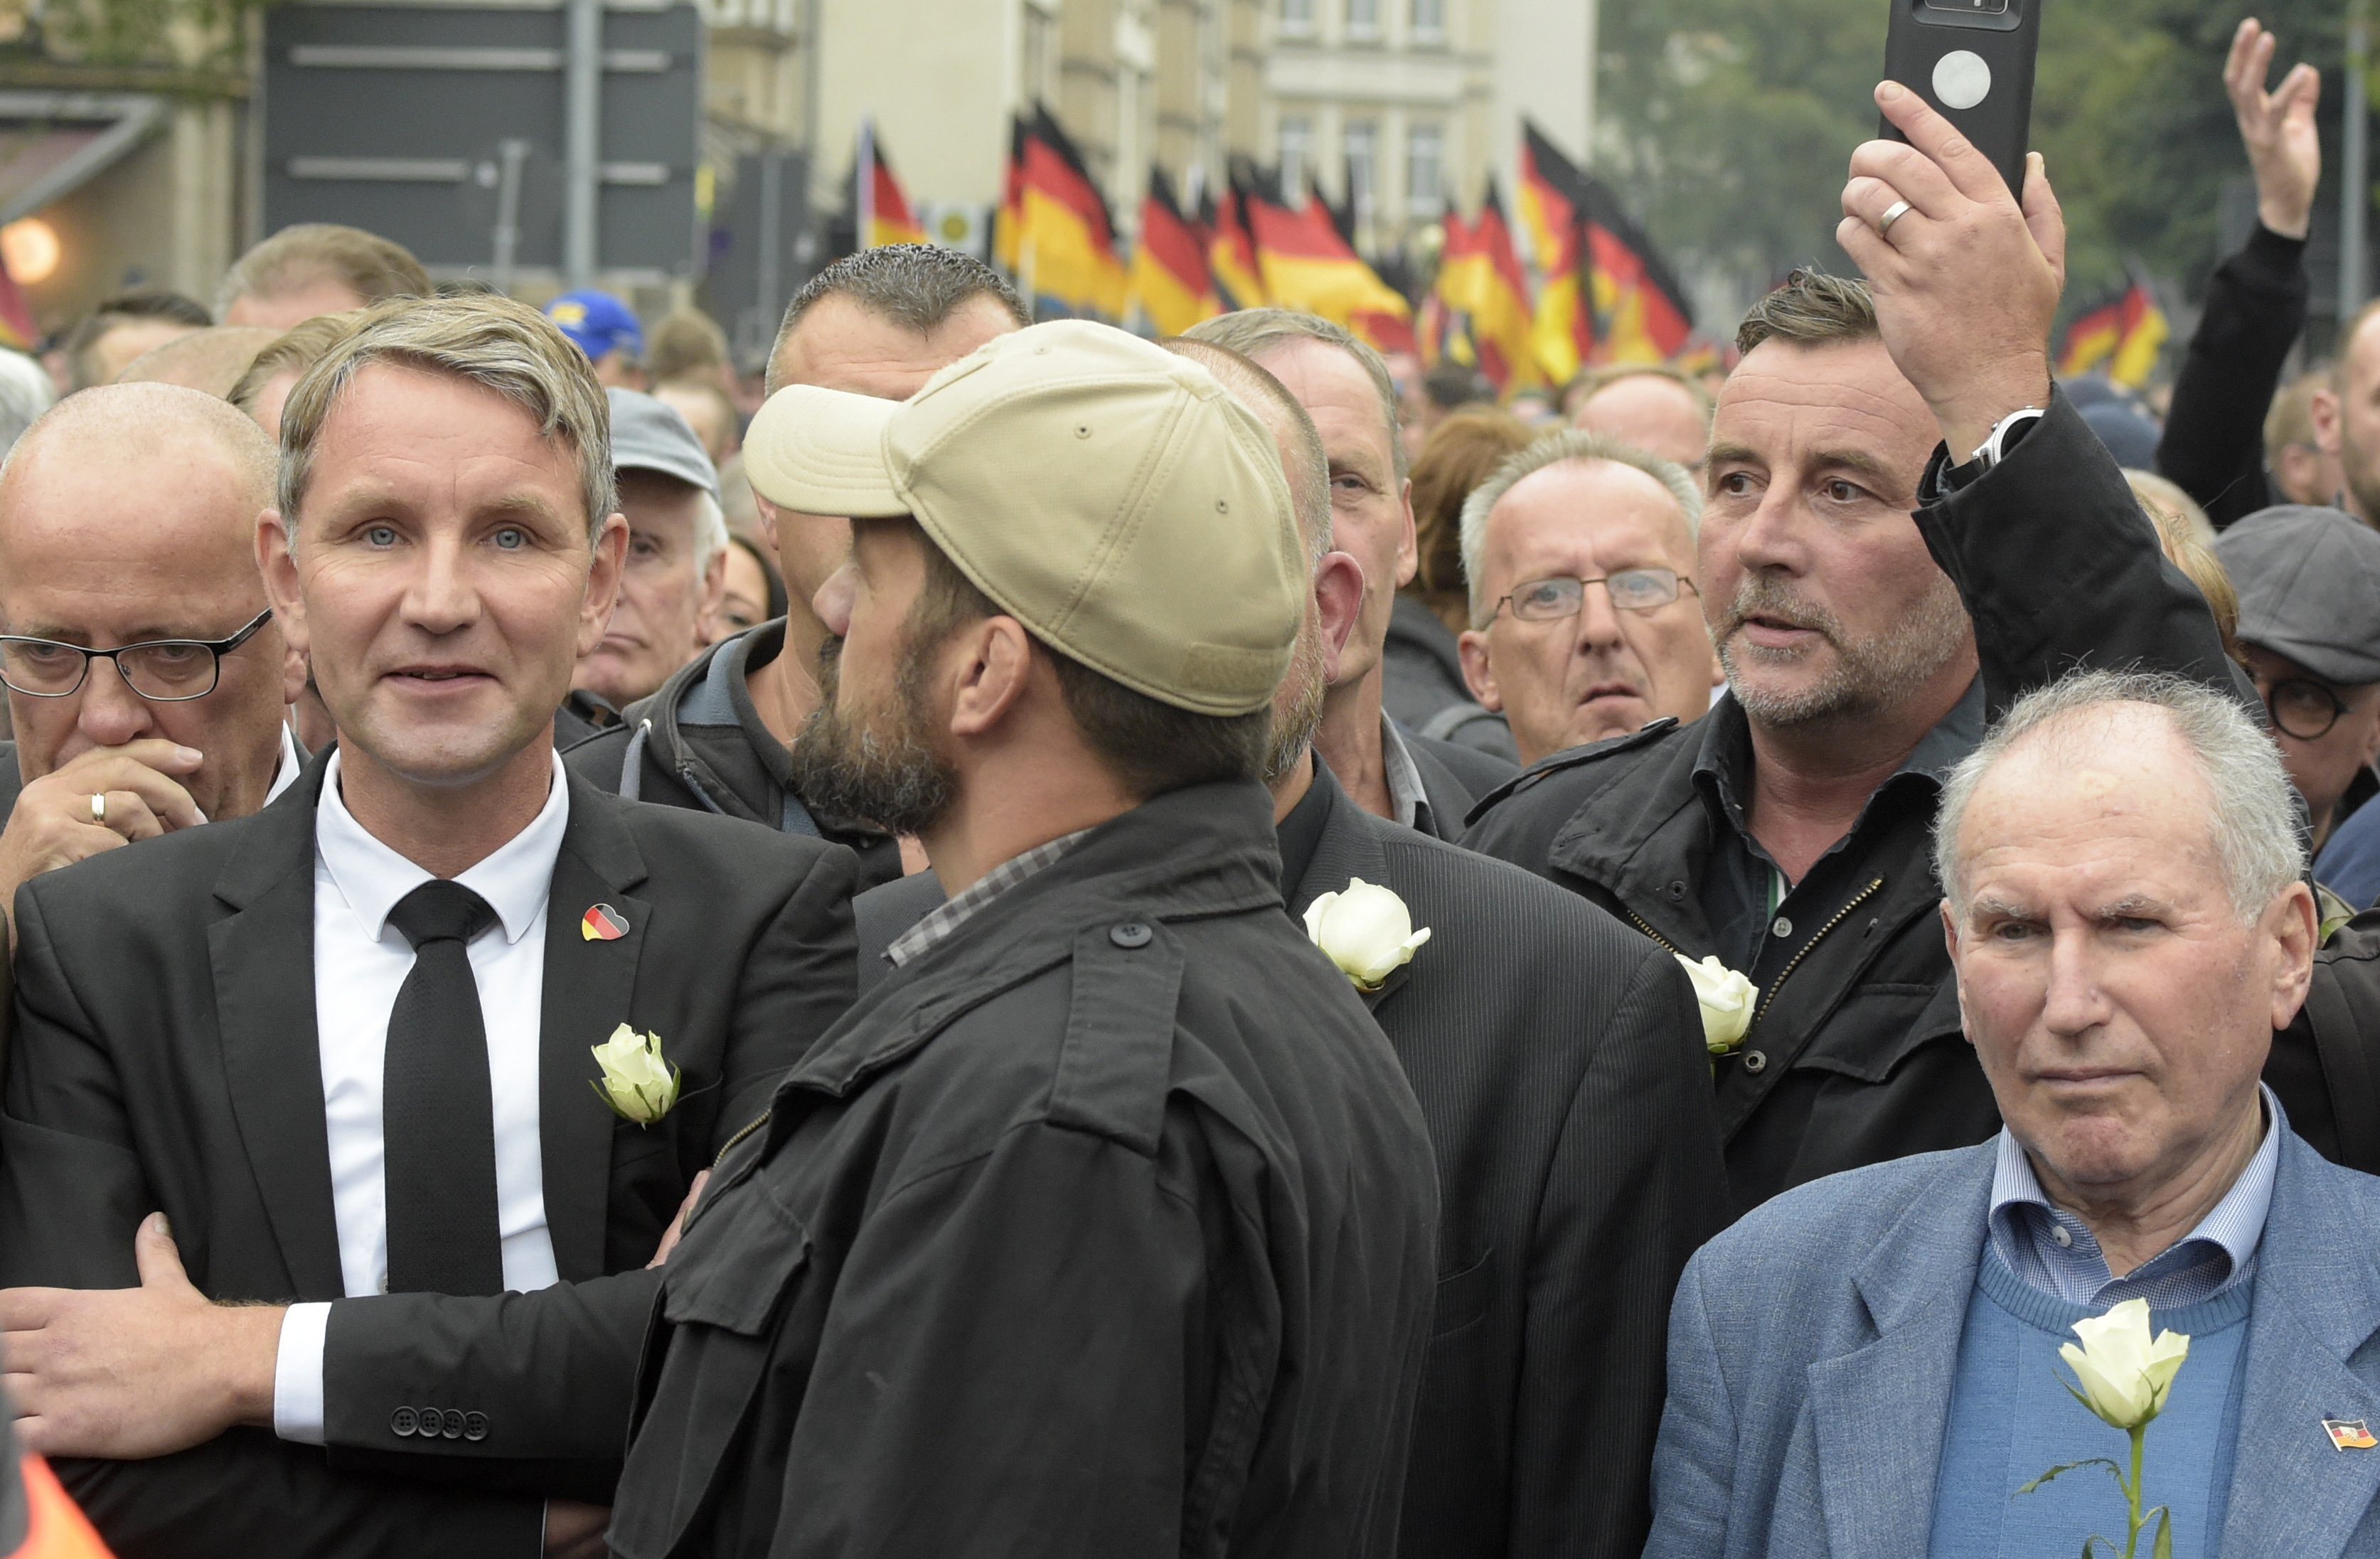 Alternative for Germany regional leader Björn Höcke (left) and PEGIDA founder Lutz Bachmann (second from right) participate in a far-right march in Chemnitz. (Jens Meyer/AP Photo)